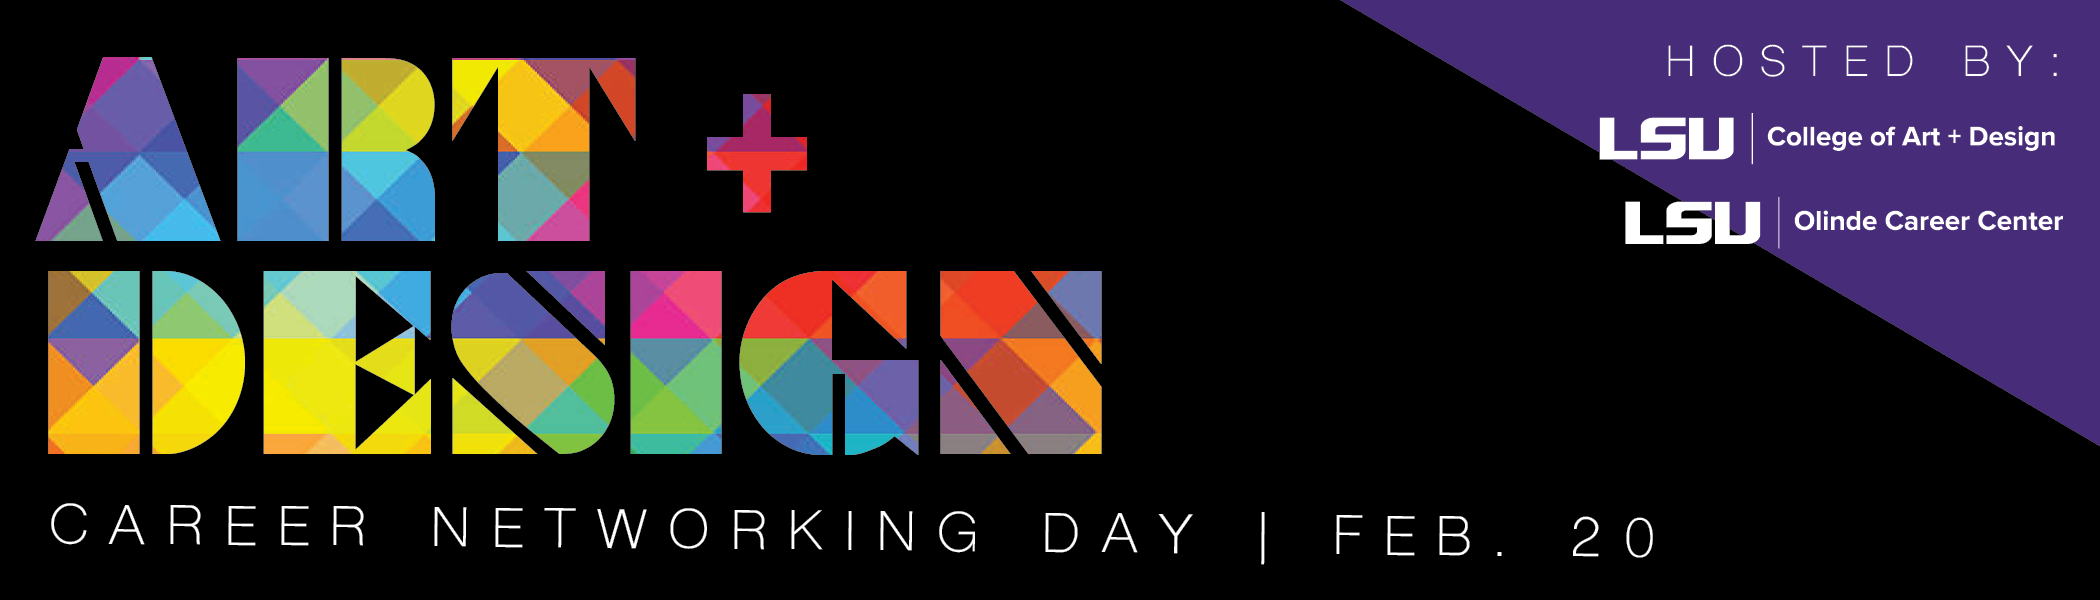 2019 Art & Design Career Networking Day Feb. 20